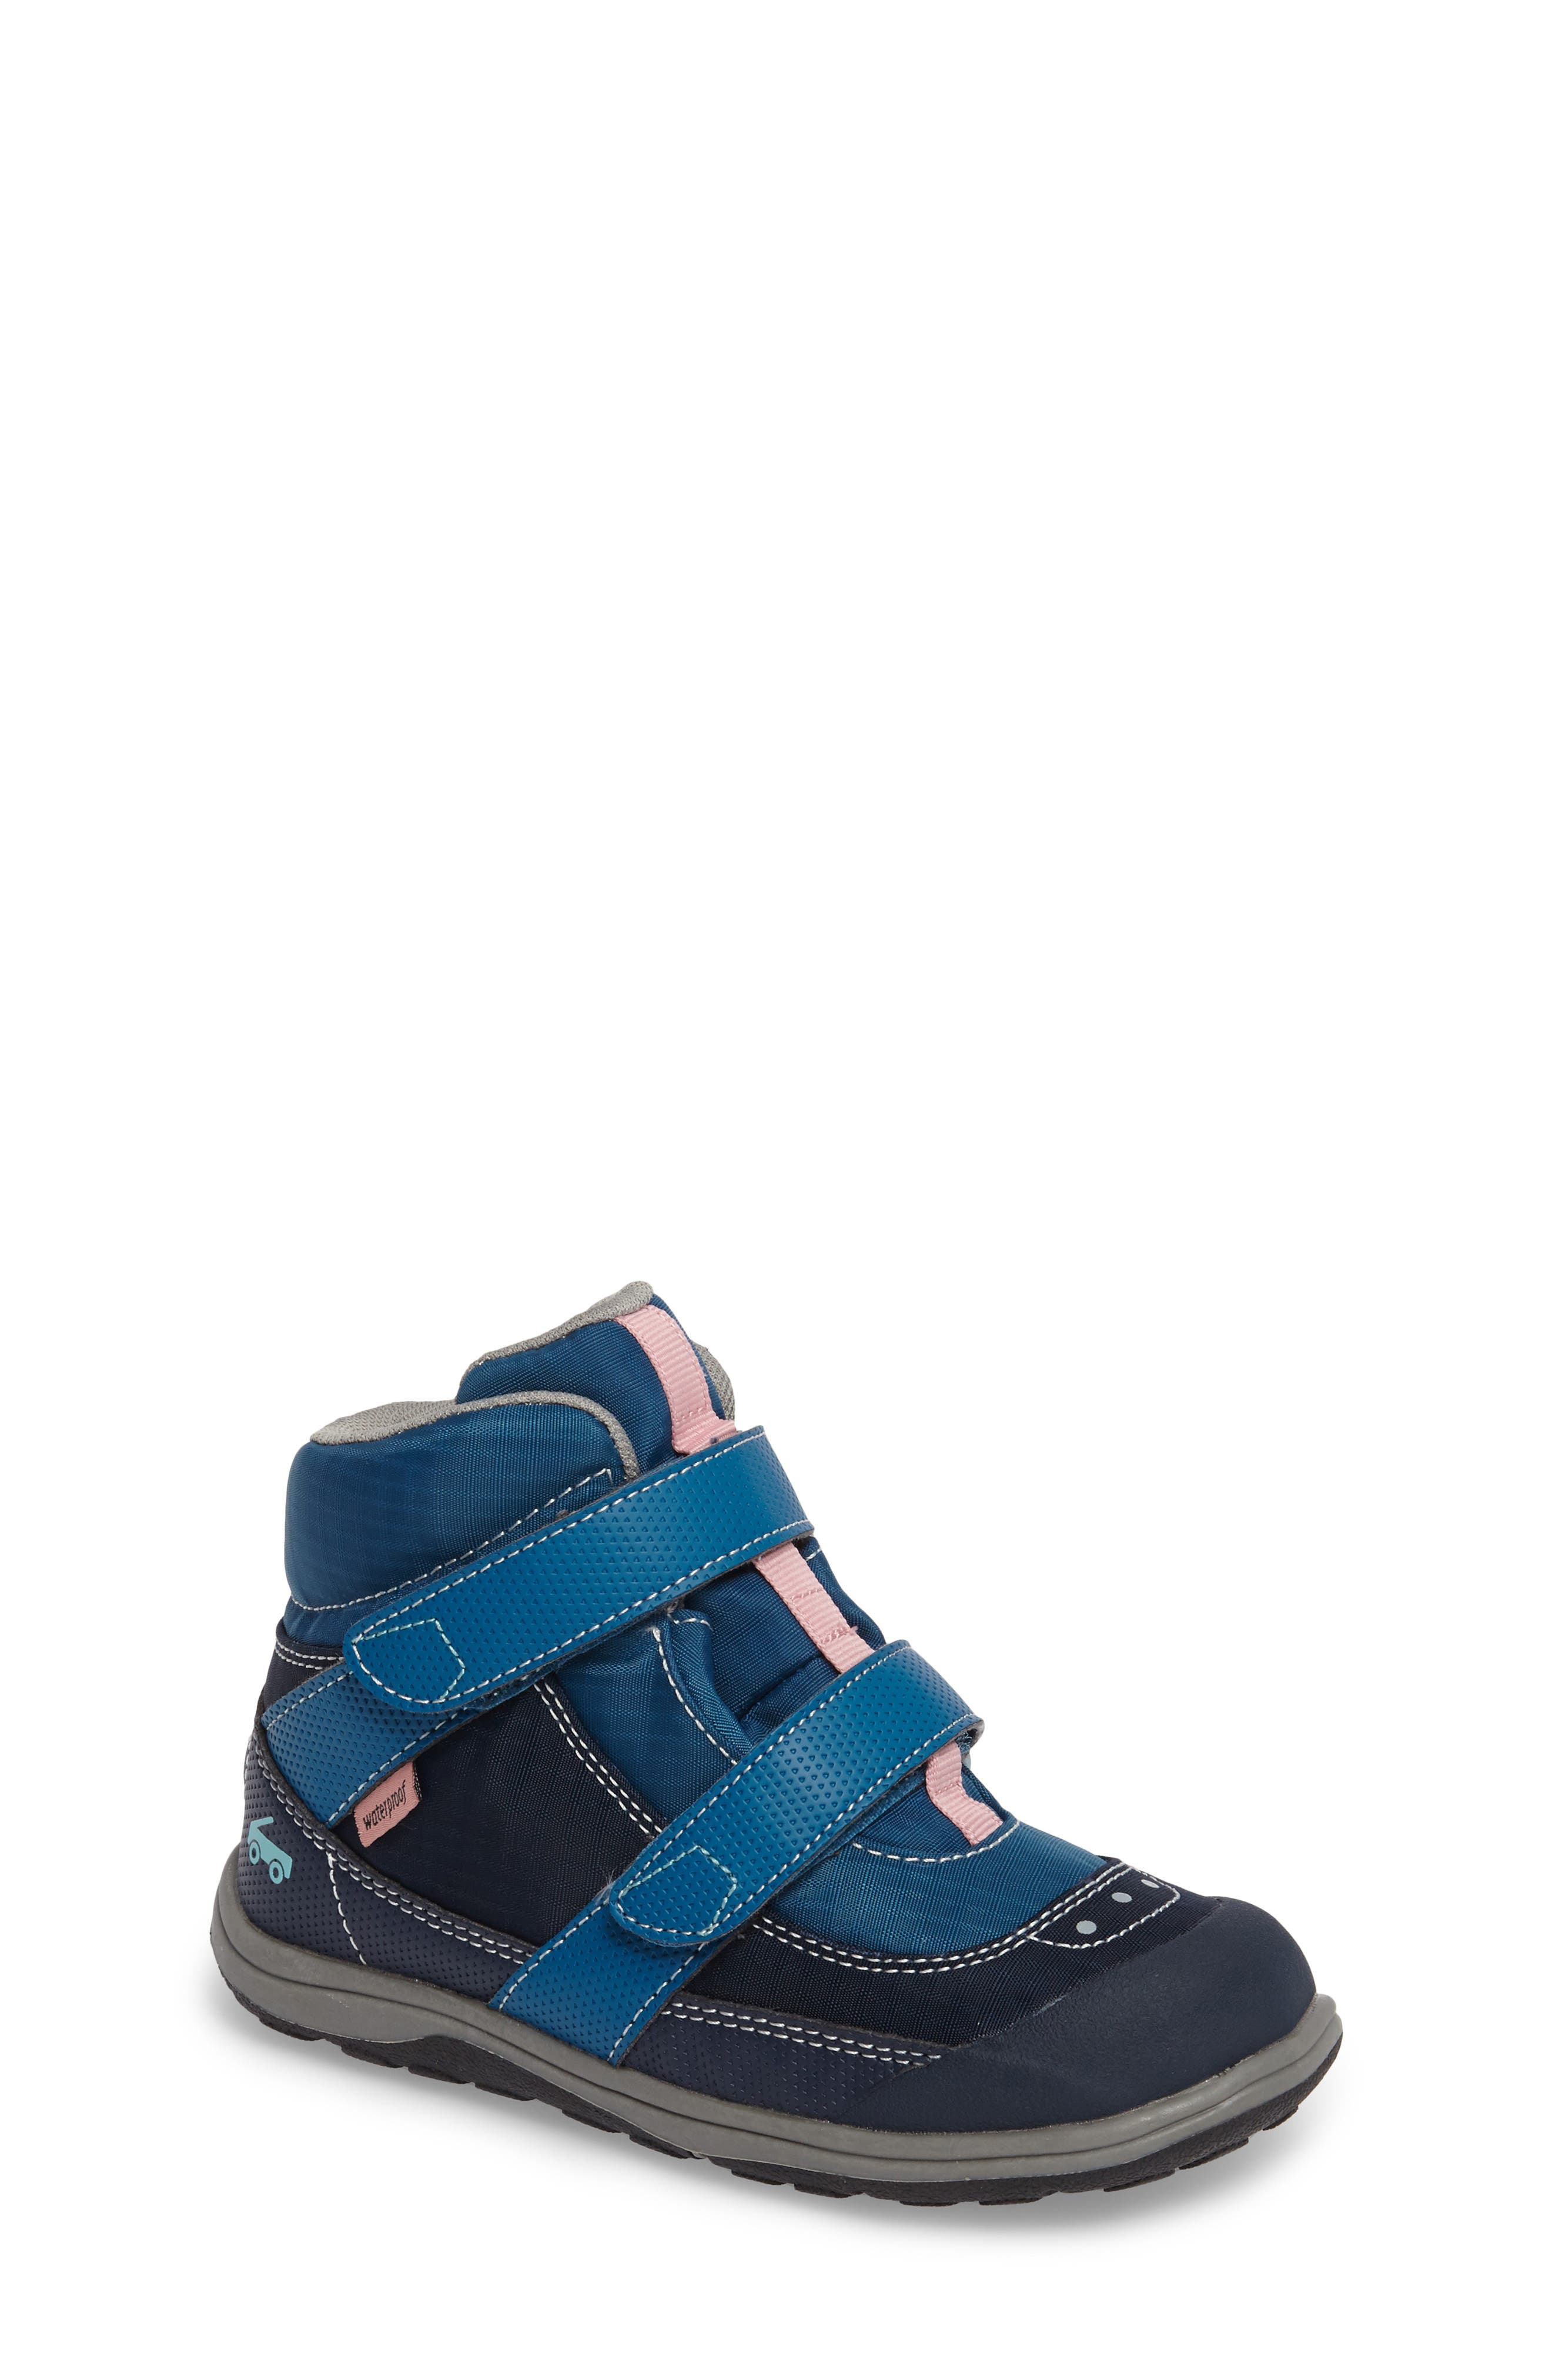 See Kai Run Atlas Waterproof Boot (Toddler & Little Kid)